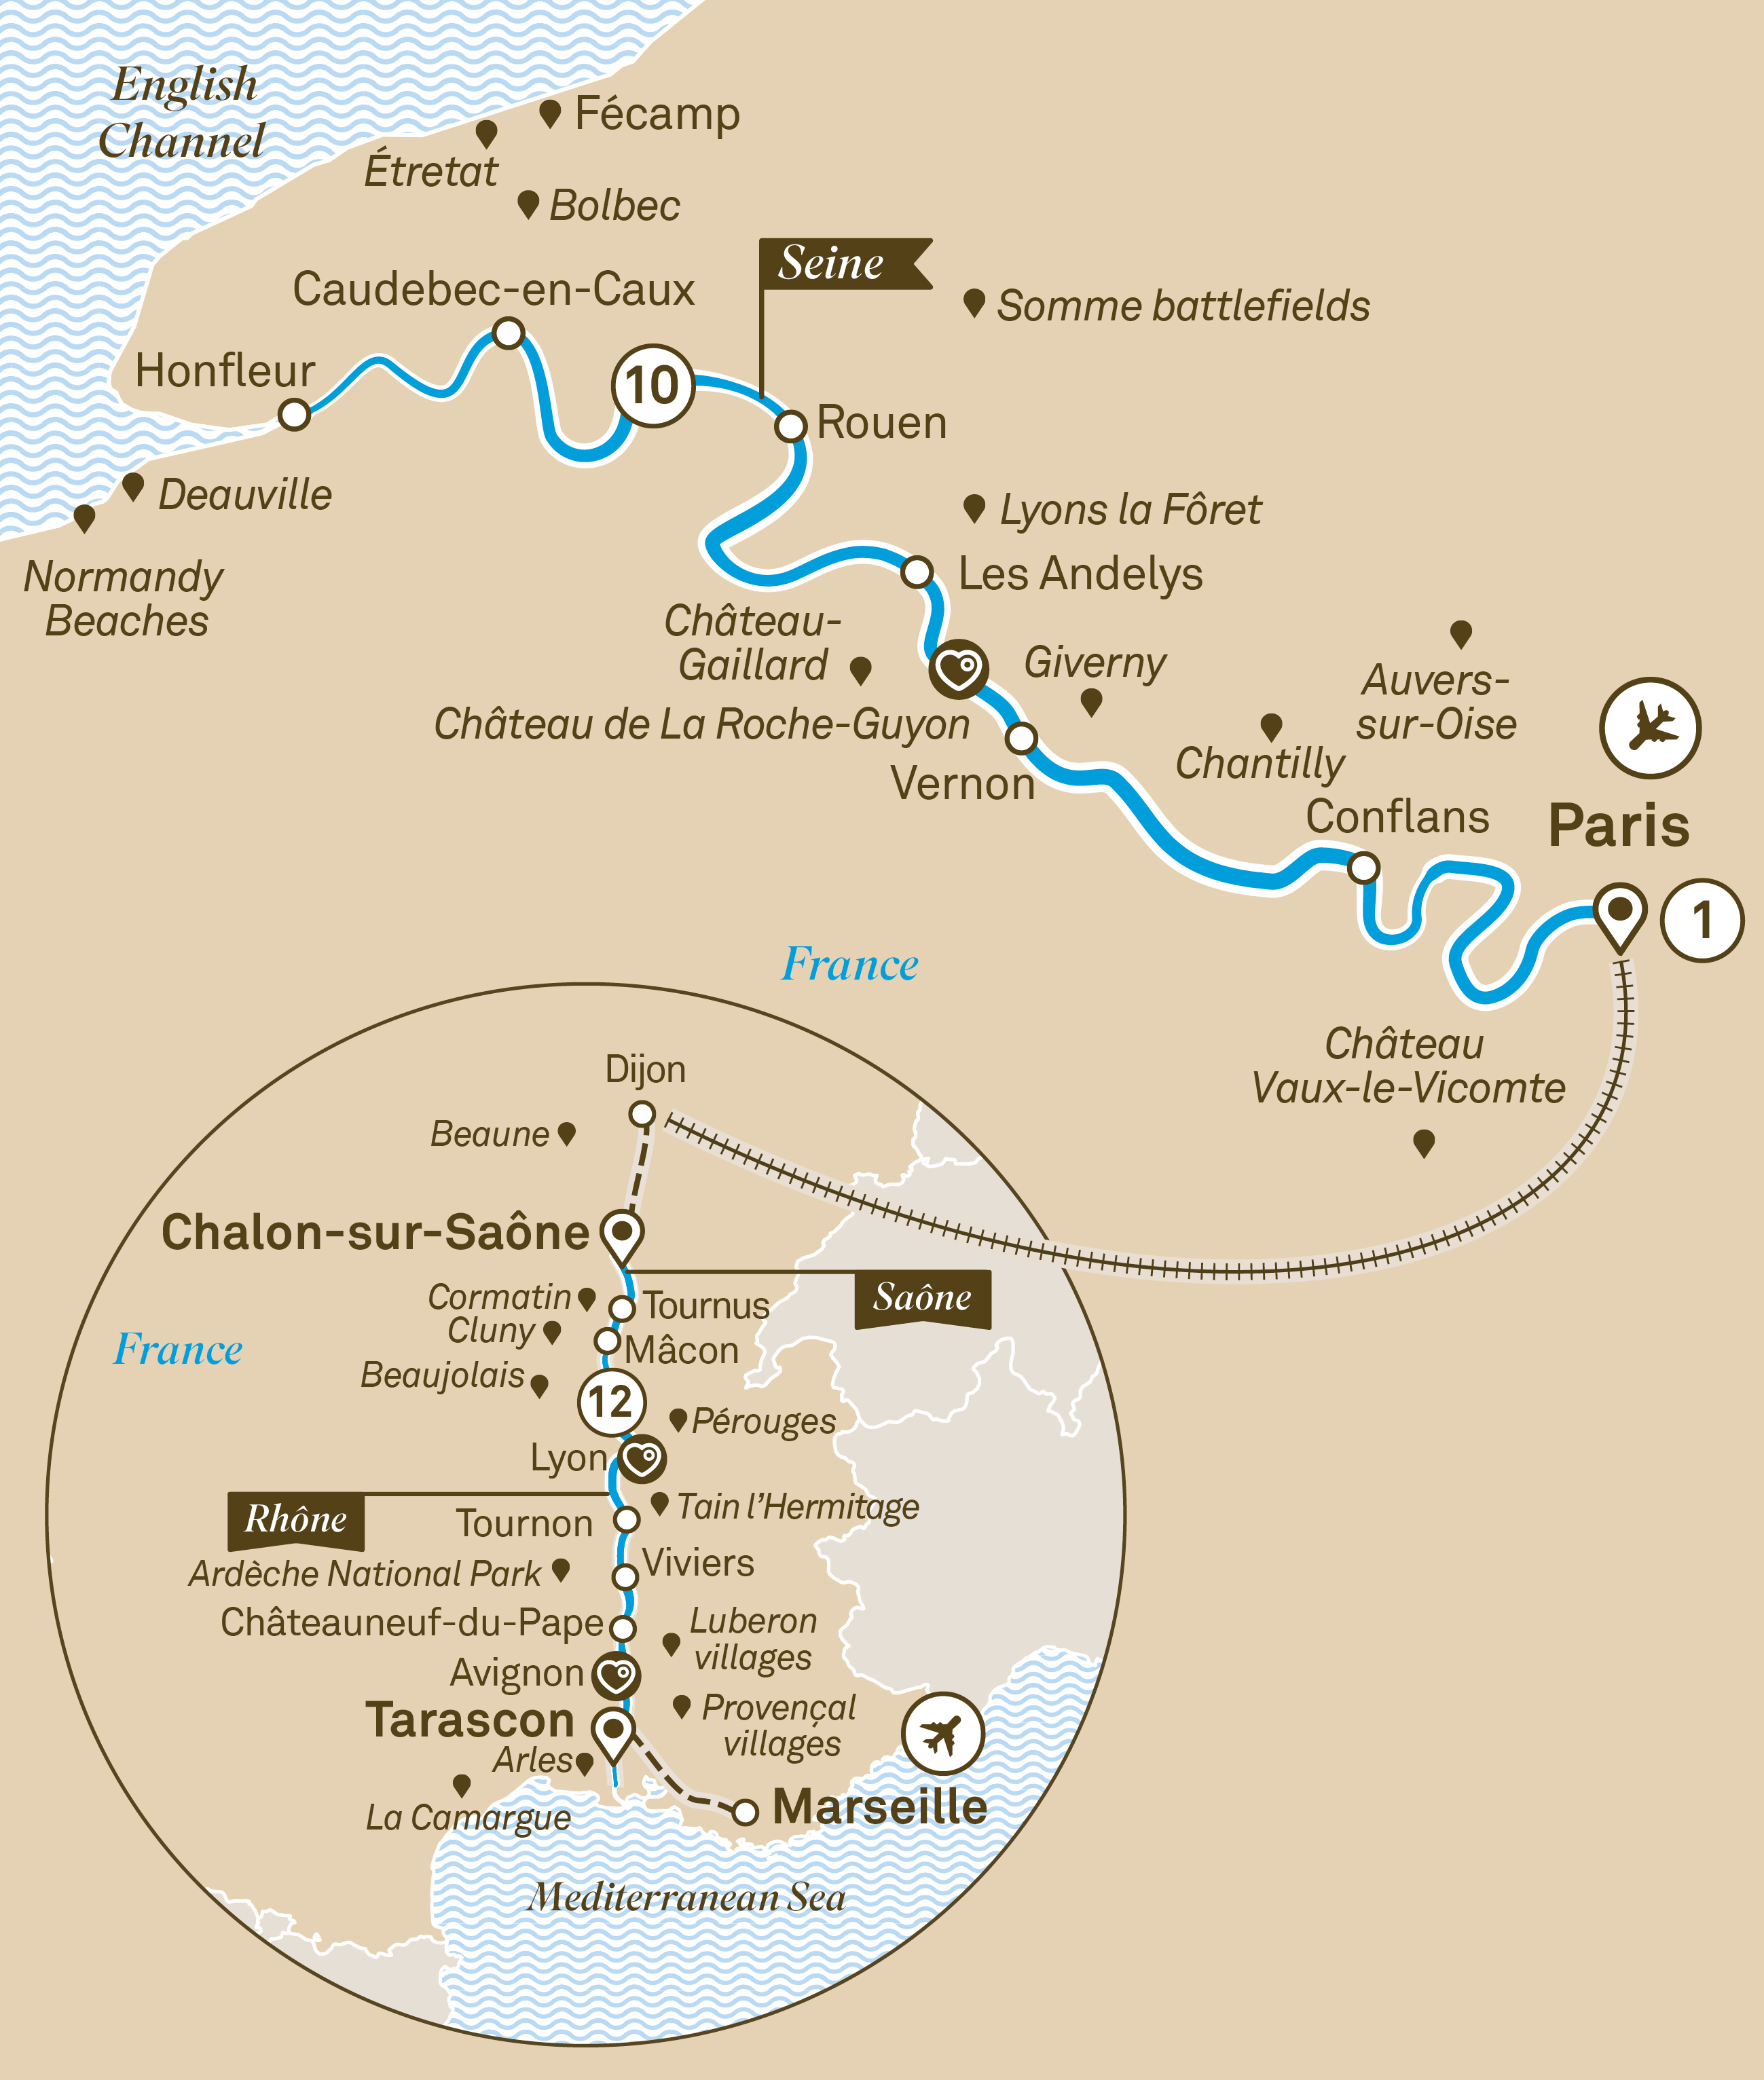 Gems of the Seine & Spectacular South of France Paris to Nice 2019